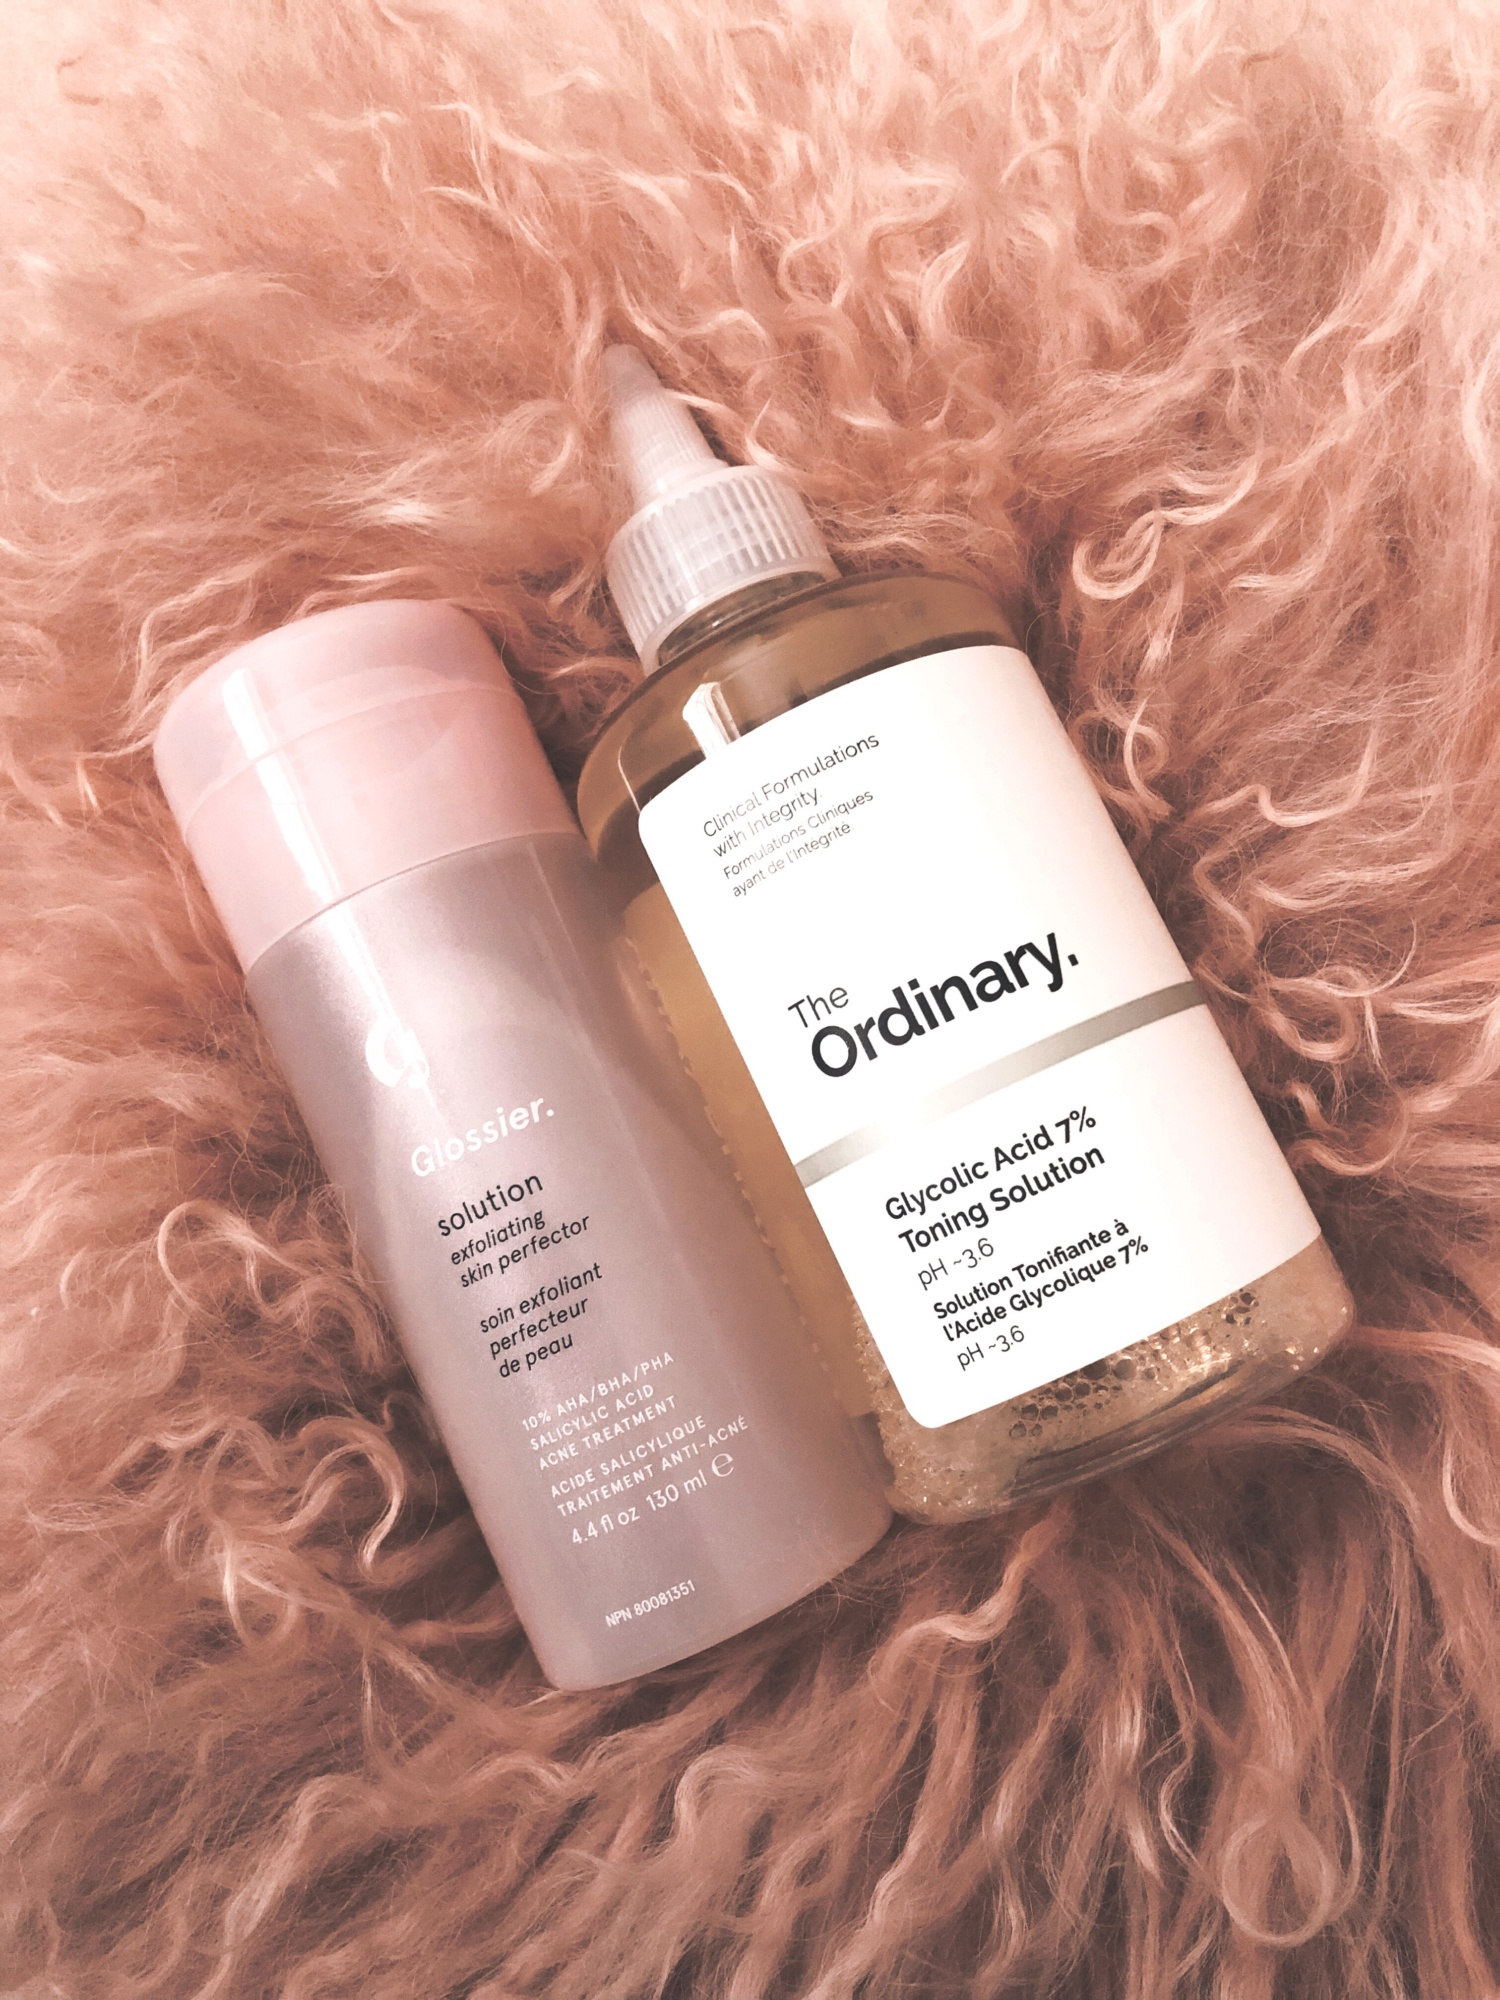 589dc0197fd2 Glossier Solution Review - Behind the Blush